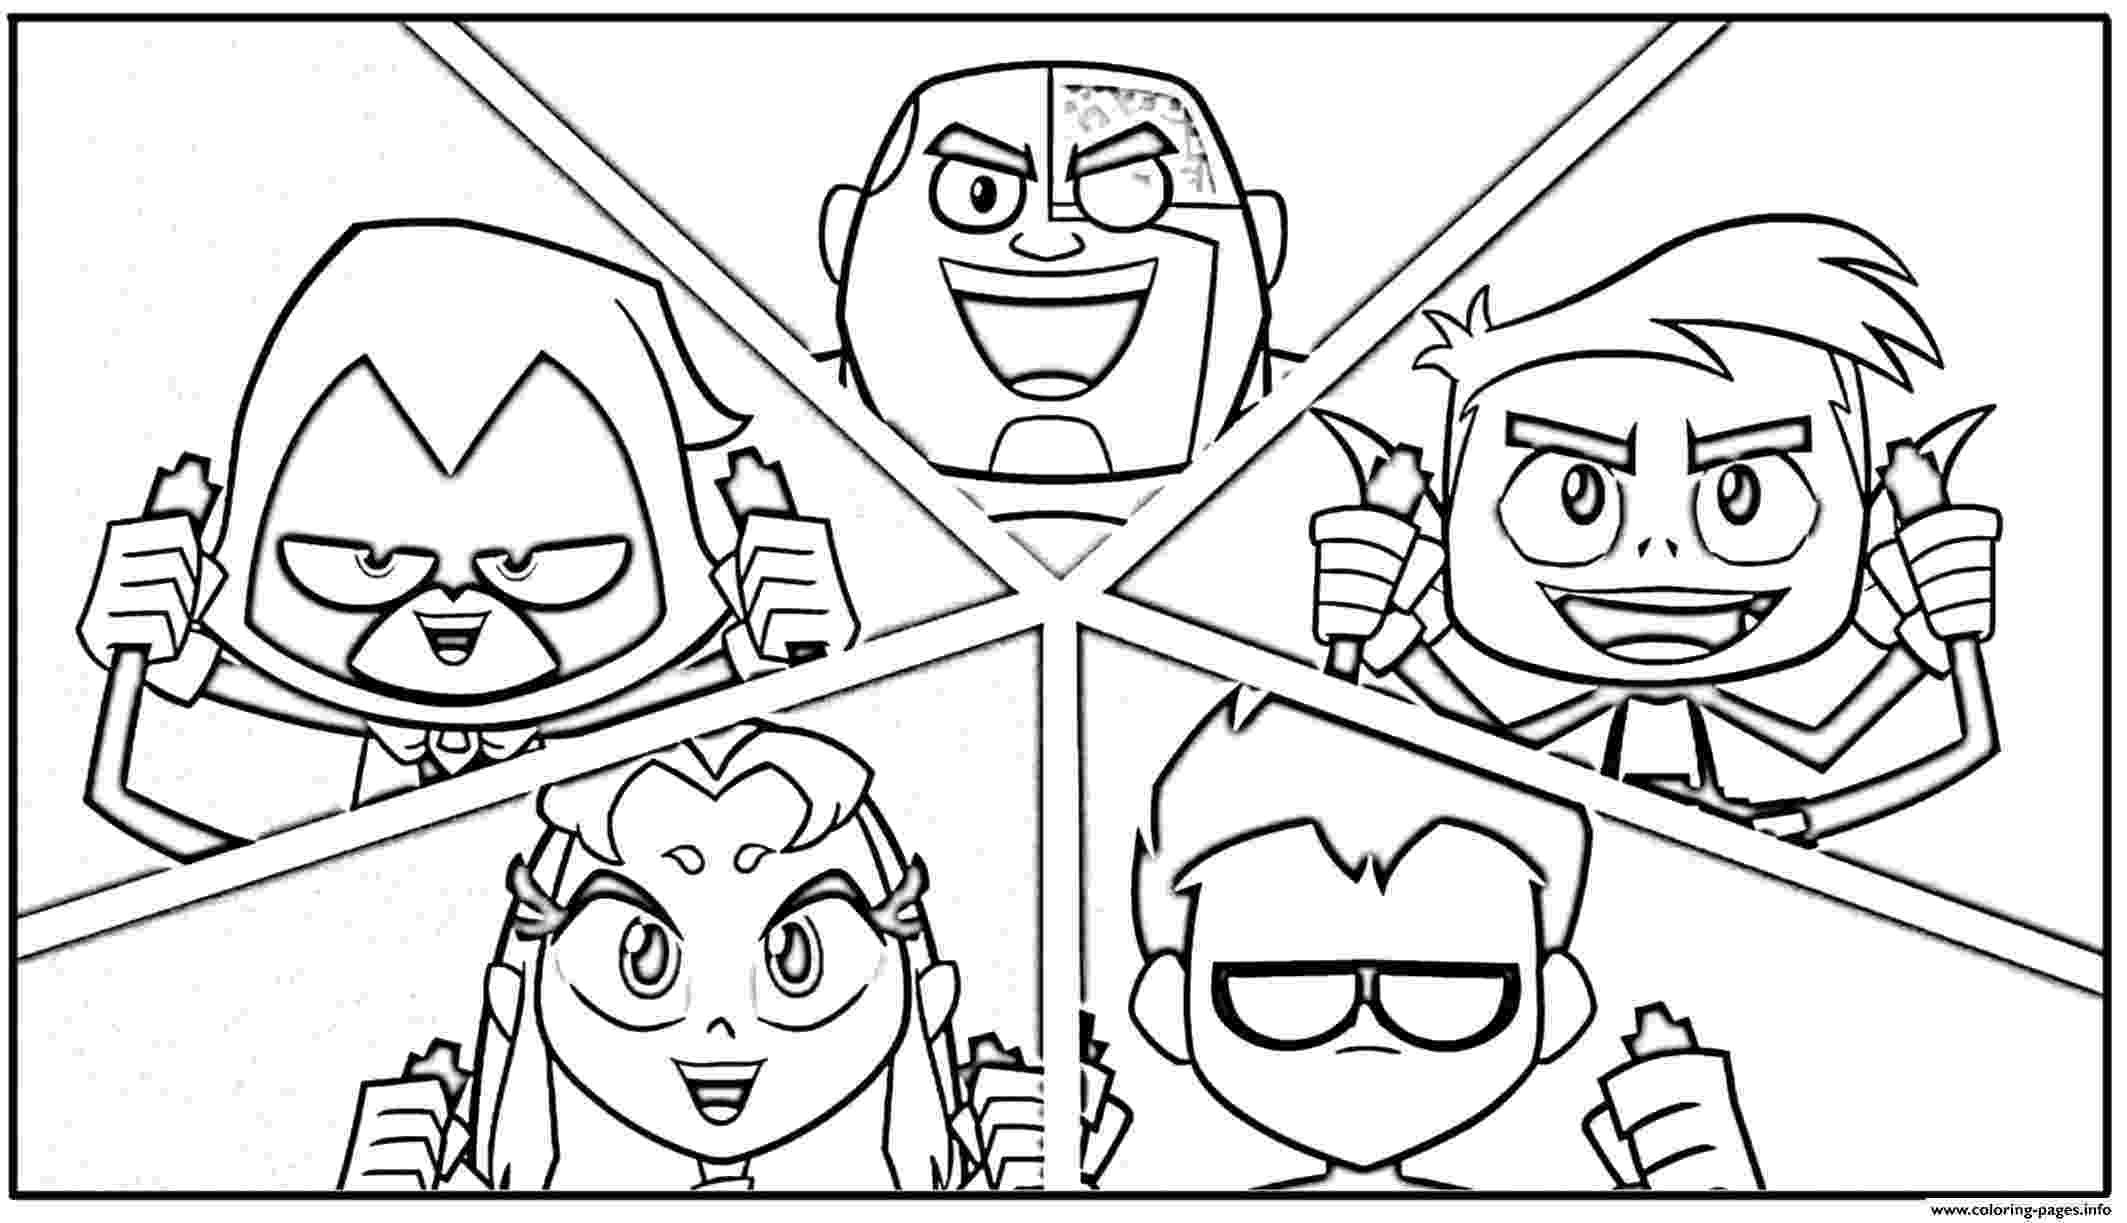 teen titans go coloring pages how to draw cyborg teen titans go step by step cartoon titans coloring go pages teen